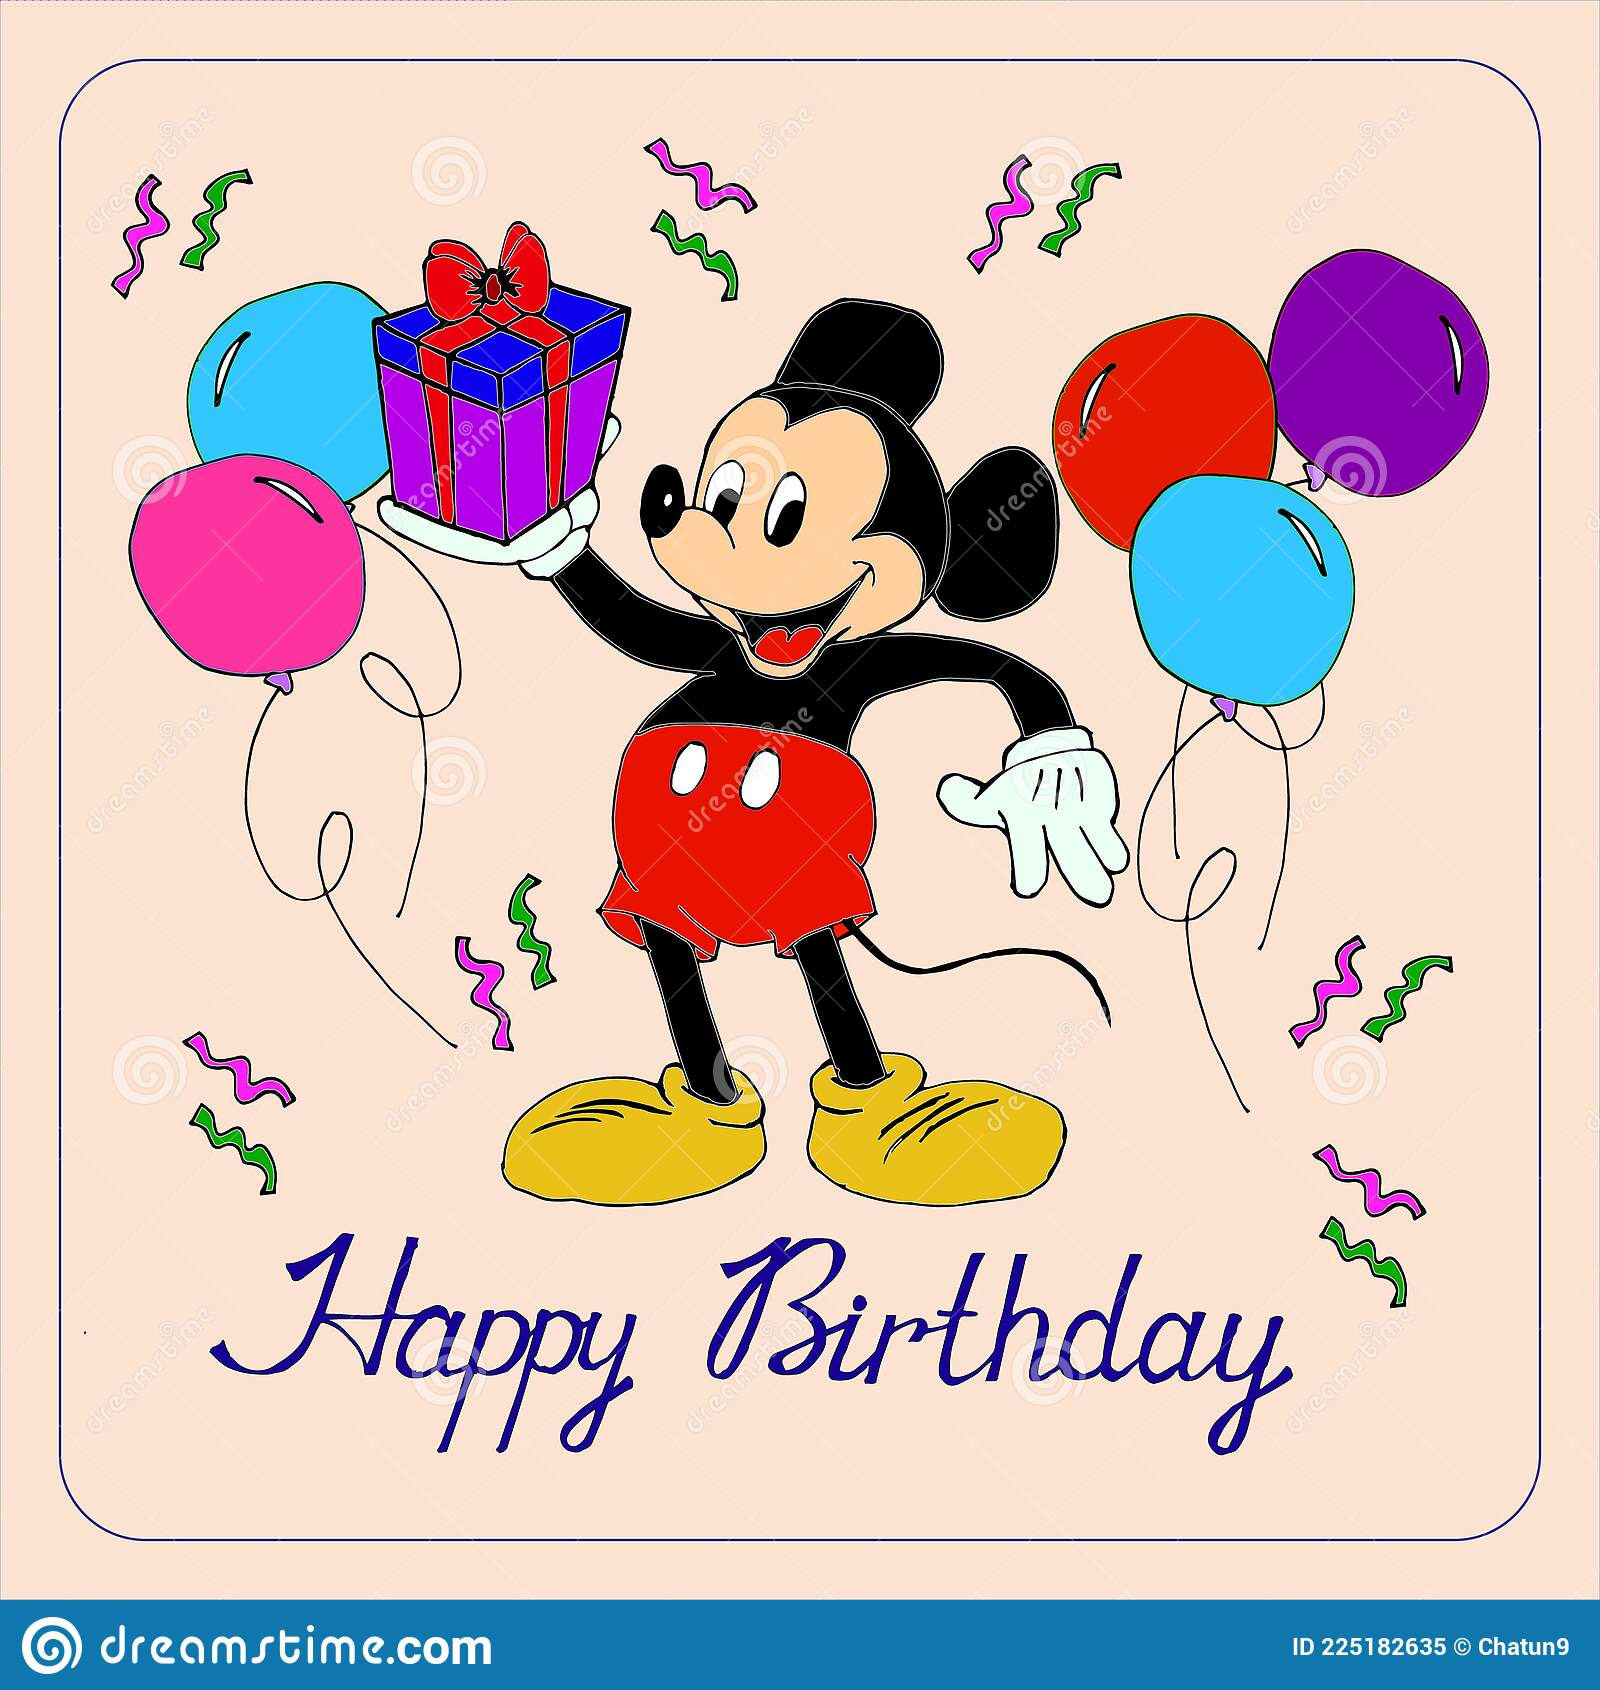 Illustration, Postcard, Mickey Mouse with a Gift Congratulates Happy  Birthday, Minimalism Design Stock Vector - Illustration of congratulates,  cartoon: 225182635